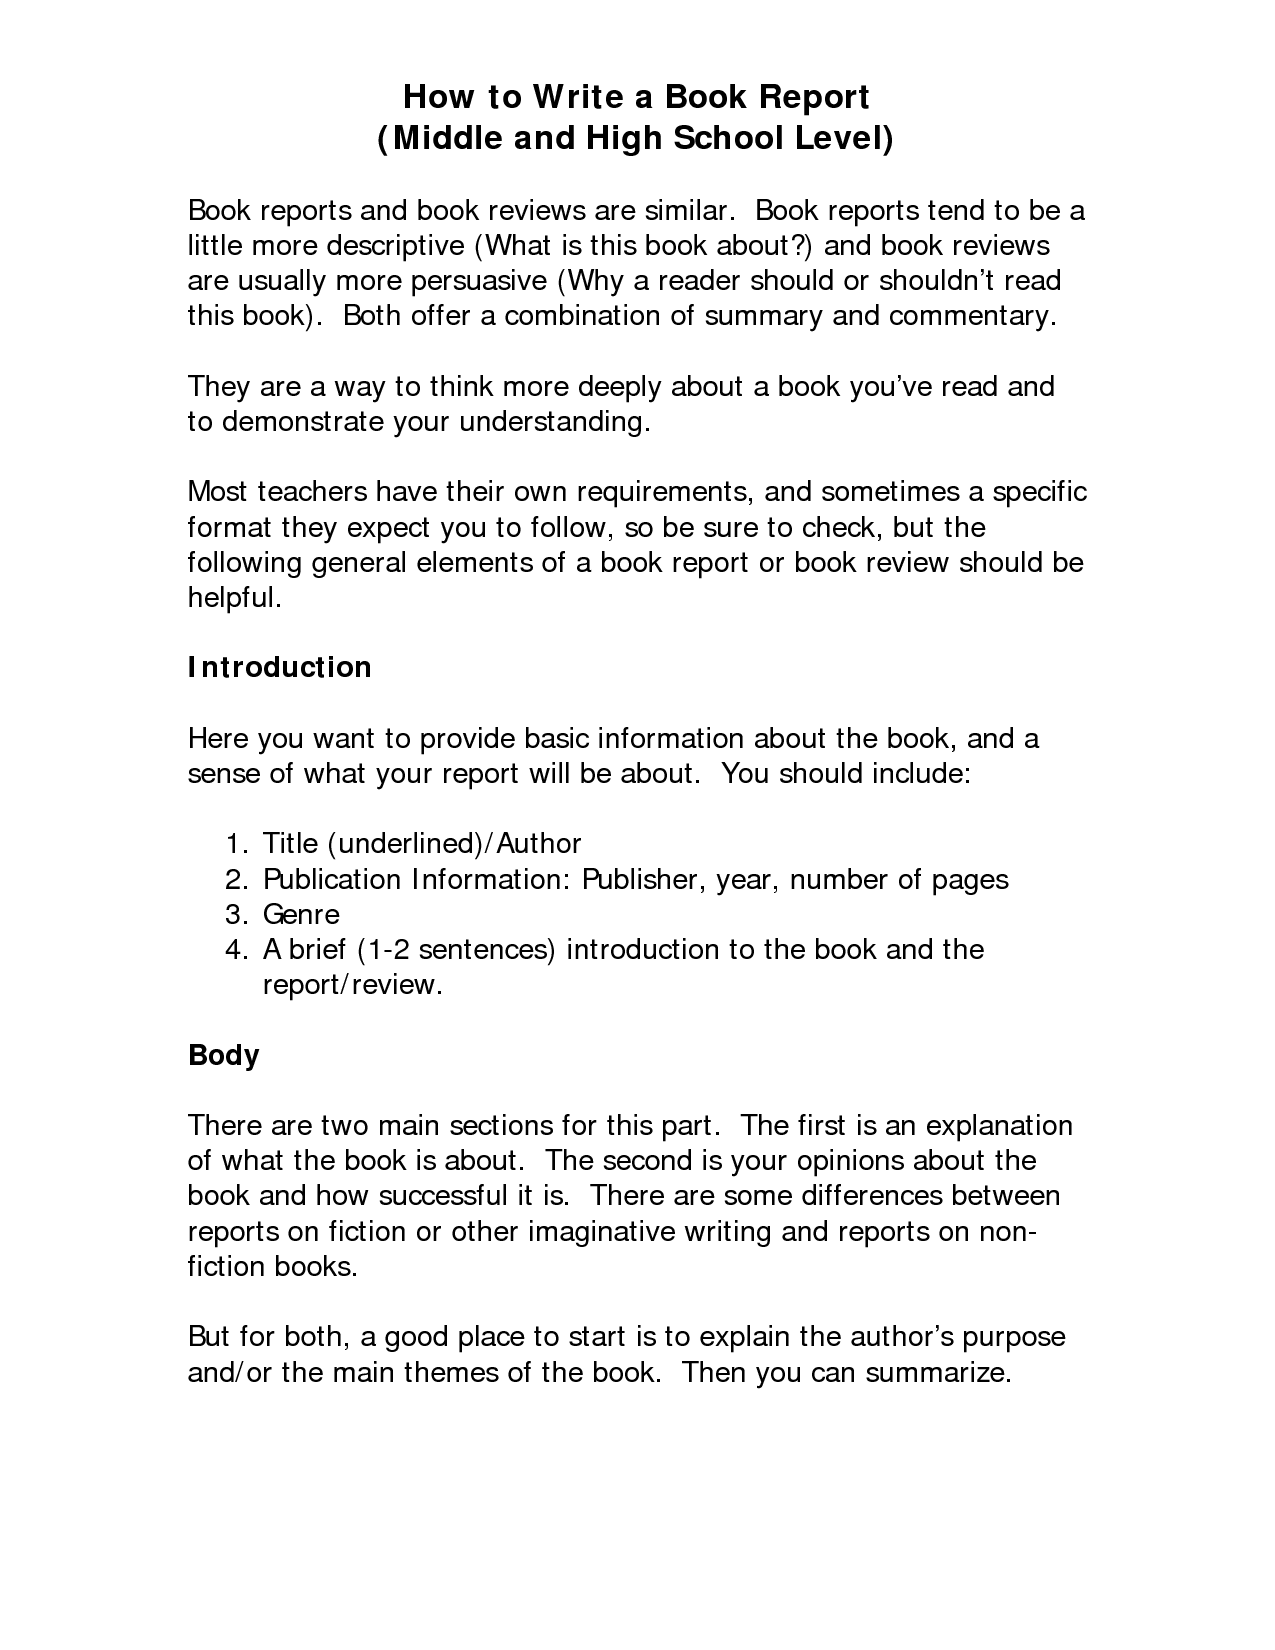 How to start an essay about a book